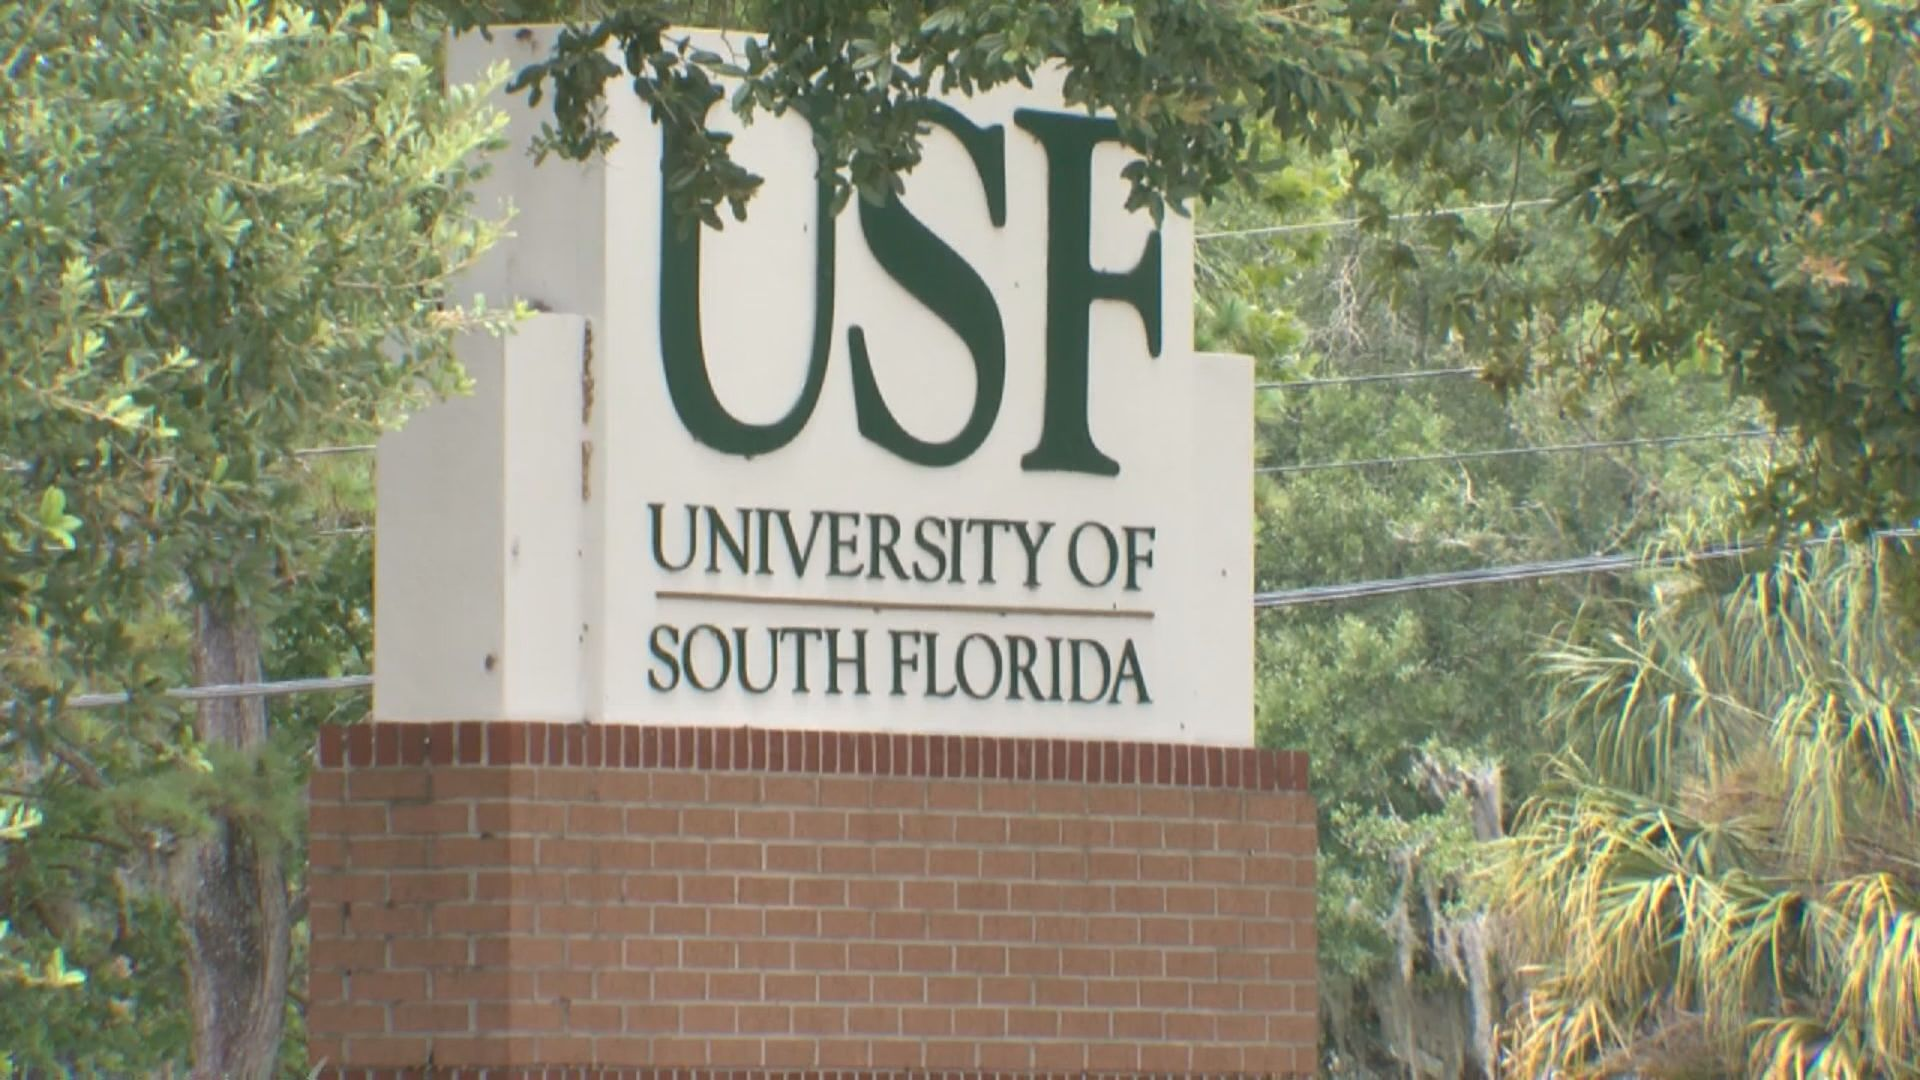 Usf 2022 Calendar.Usf Announces In Person Graduation Ceremonies Will Feature Names Being Announced Wfla